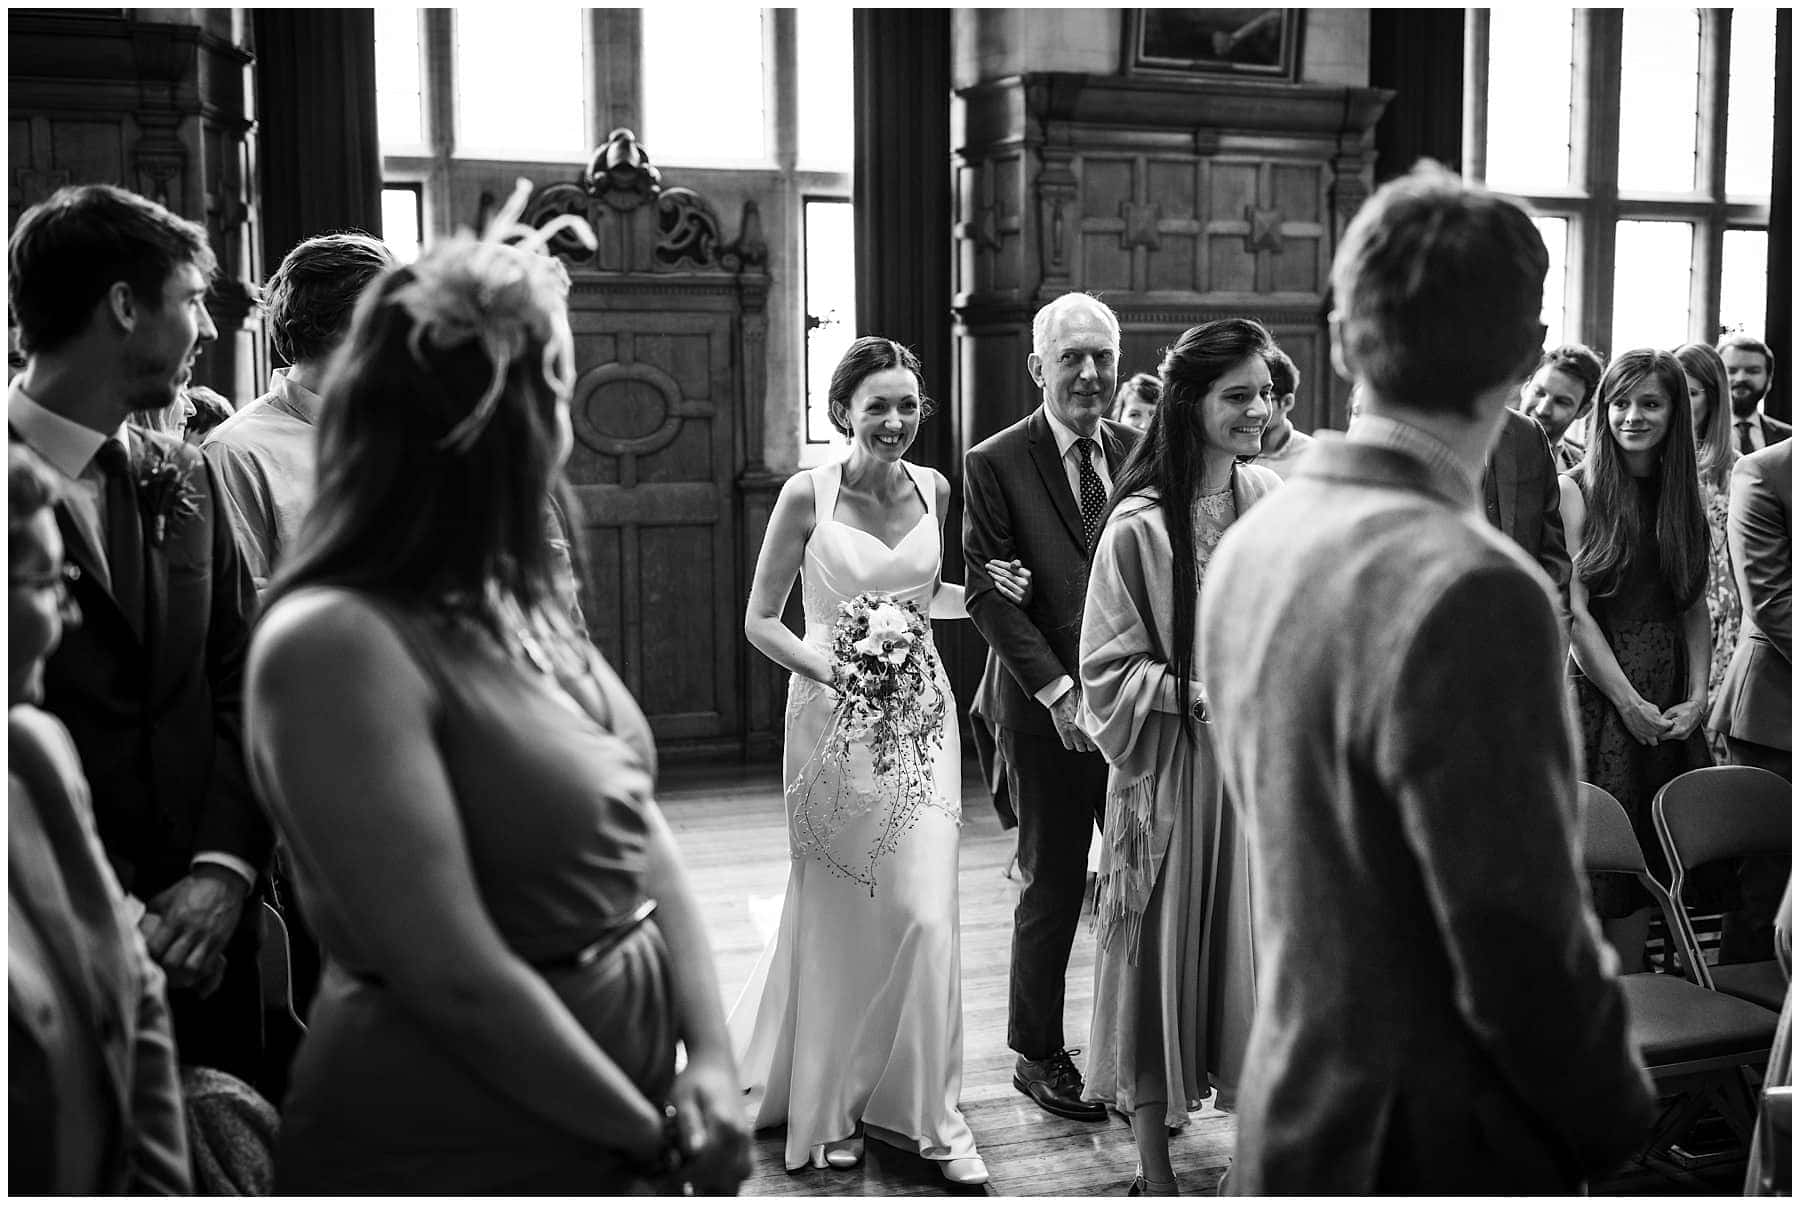 Oxfordshire wedding Photographer J S Coates Wedding Photography. Oxford Town Hall & The Perch Pub 32